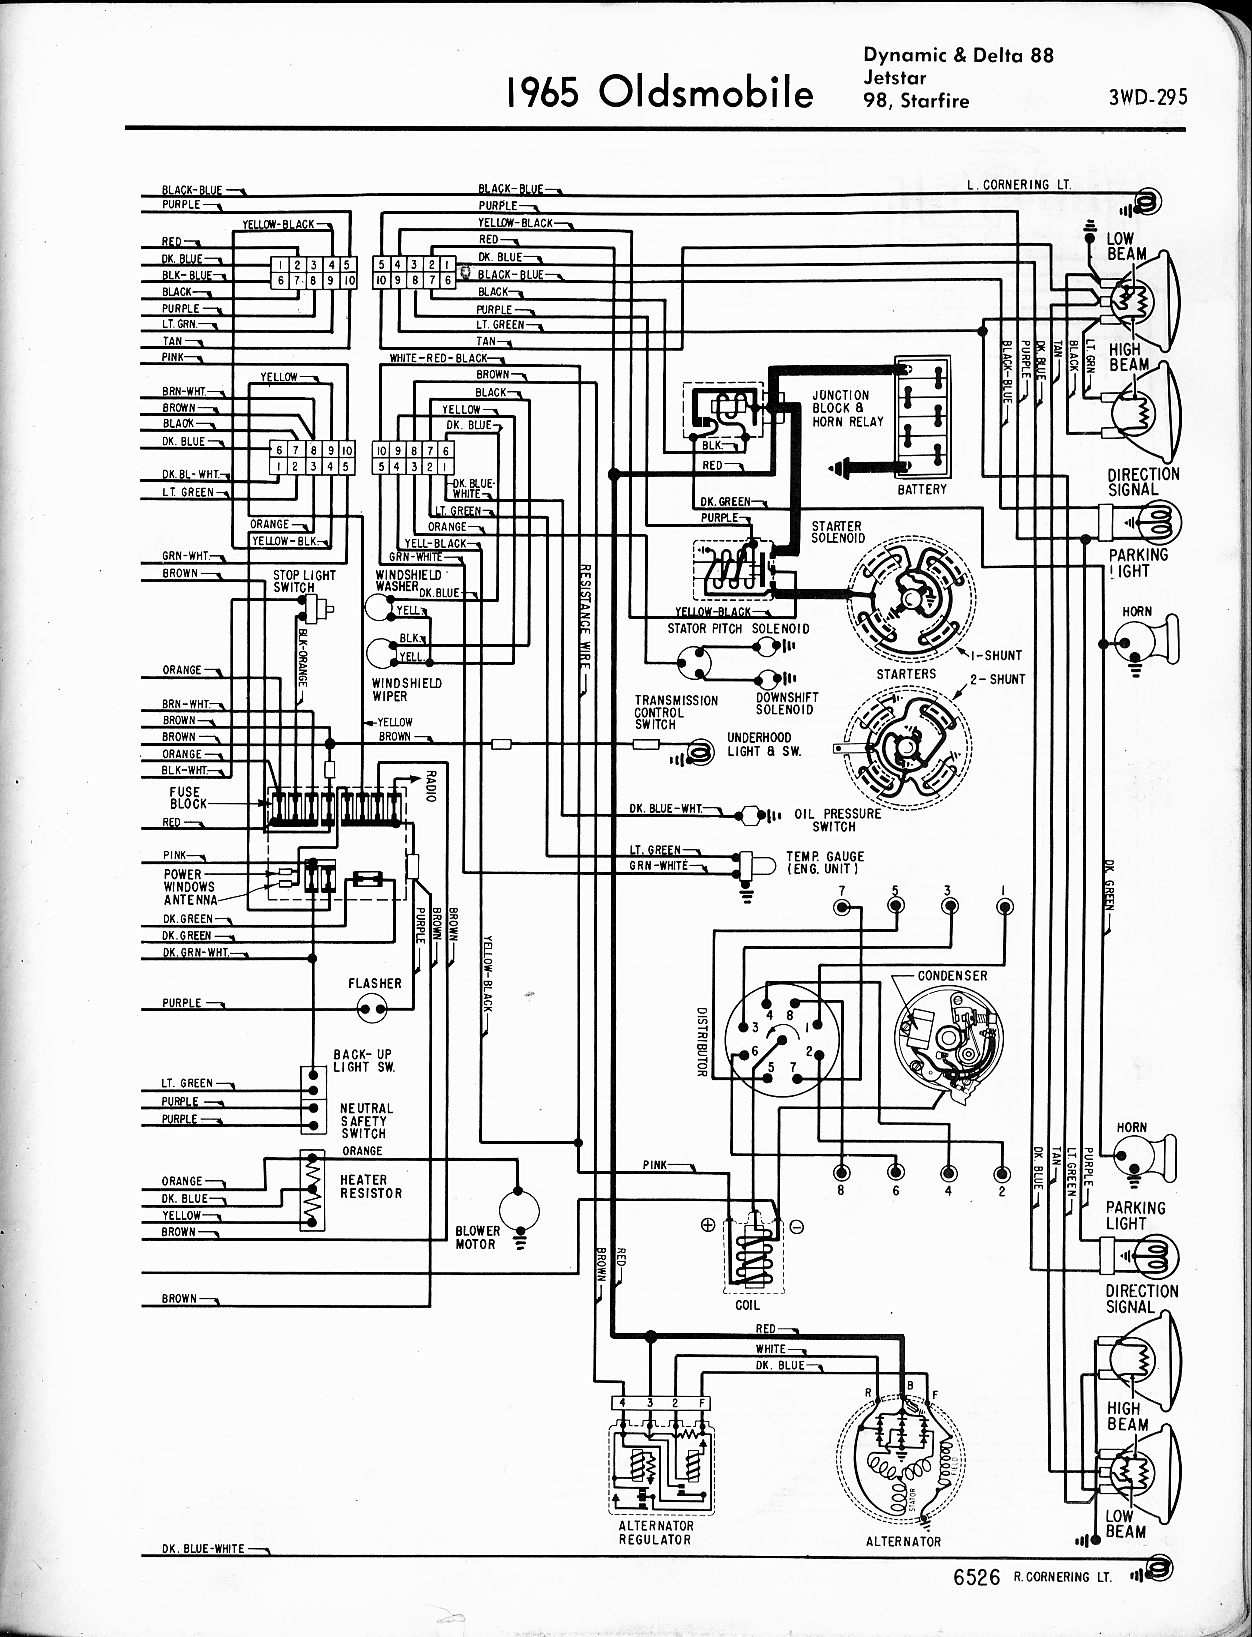 MWire5765 295 oldsmobile wiring diagrams the old car manual project  at crackthecode.co